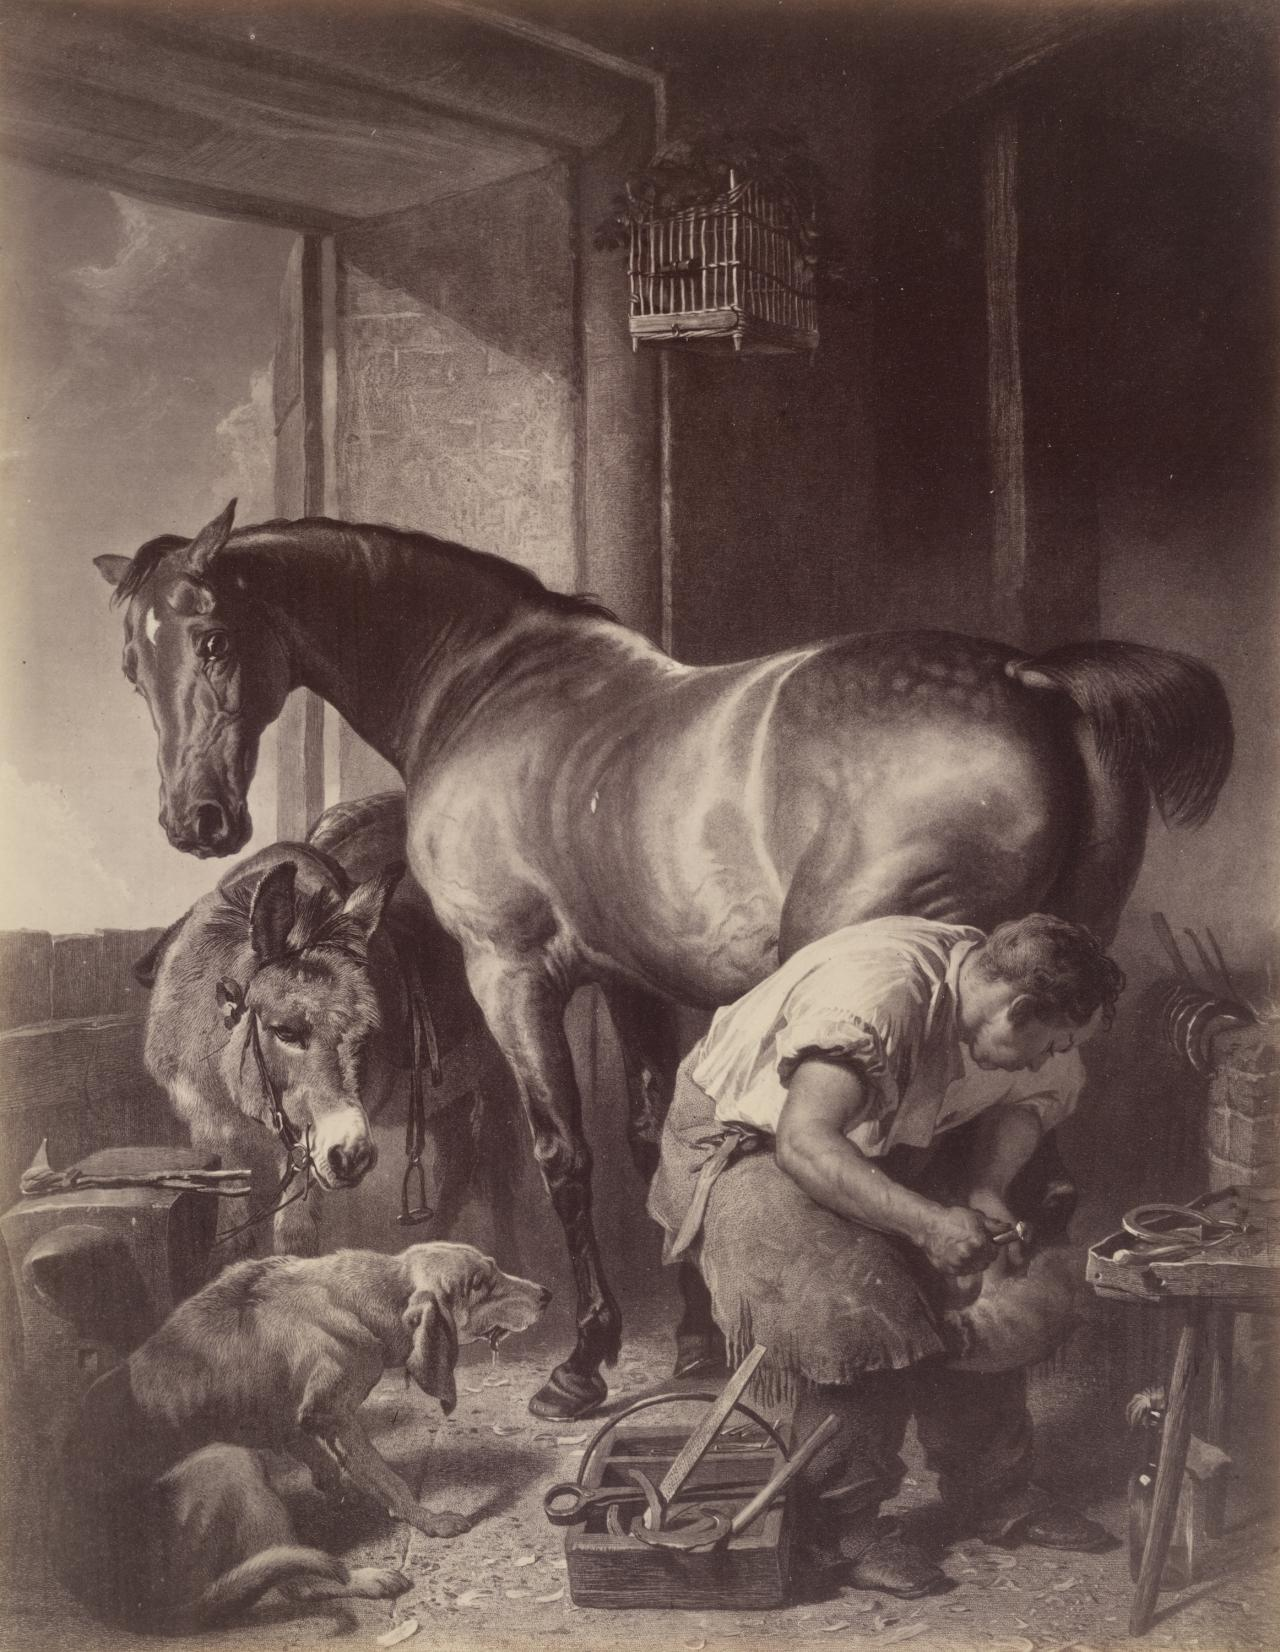 Edwin Landseer's painting, The shoeing forge